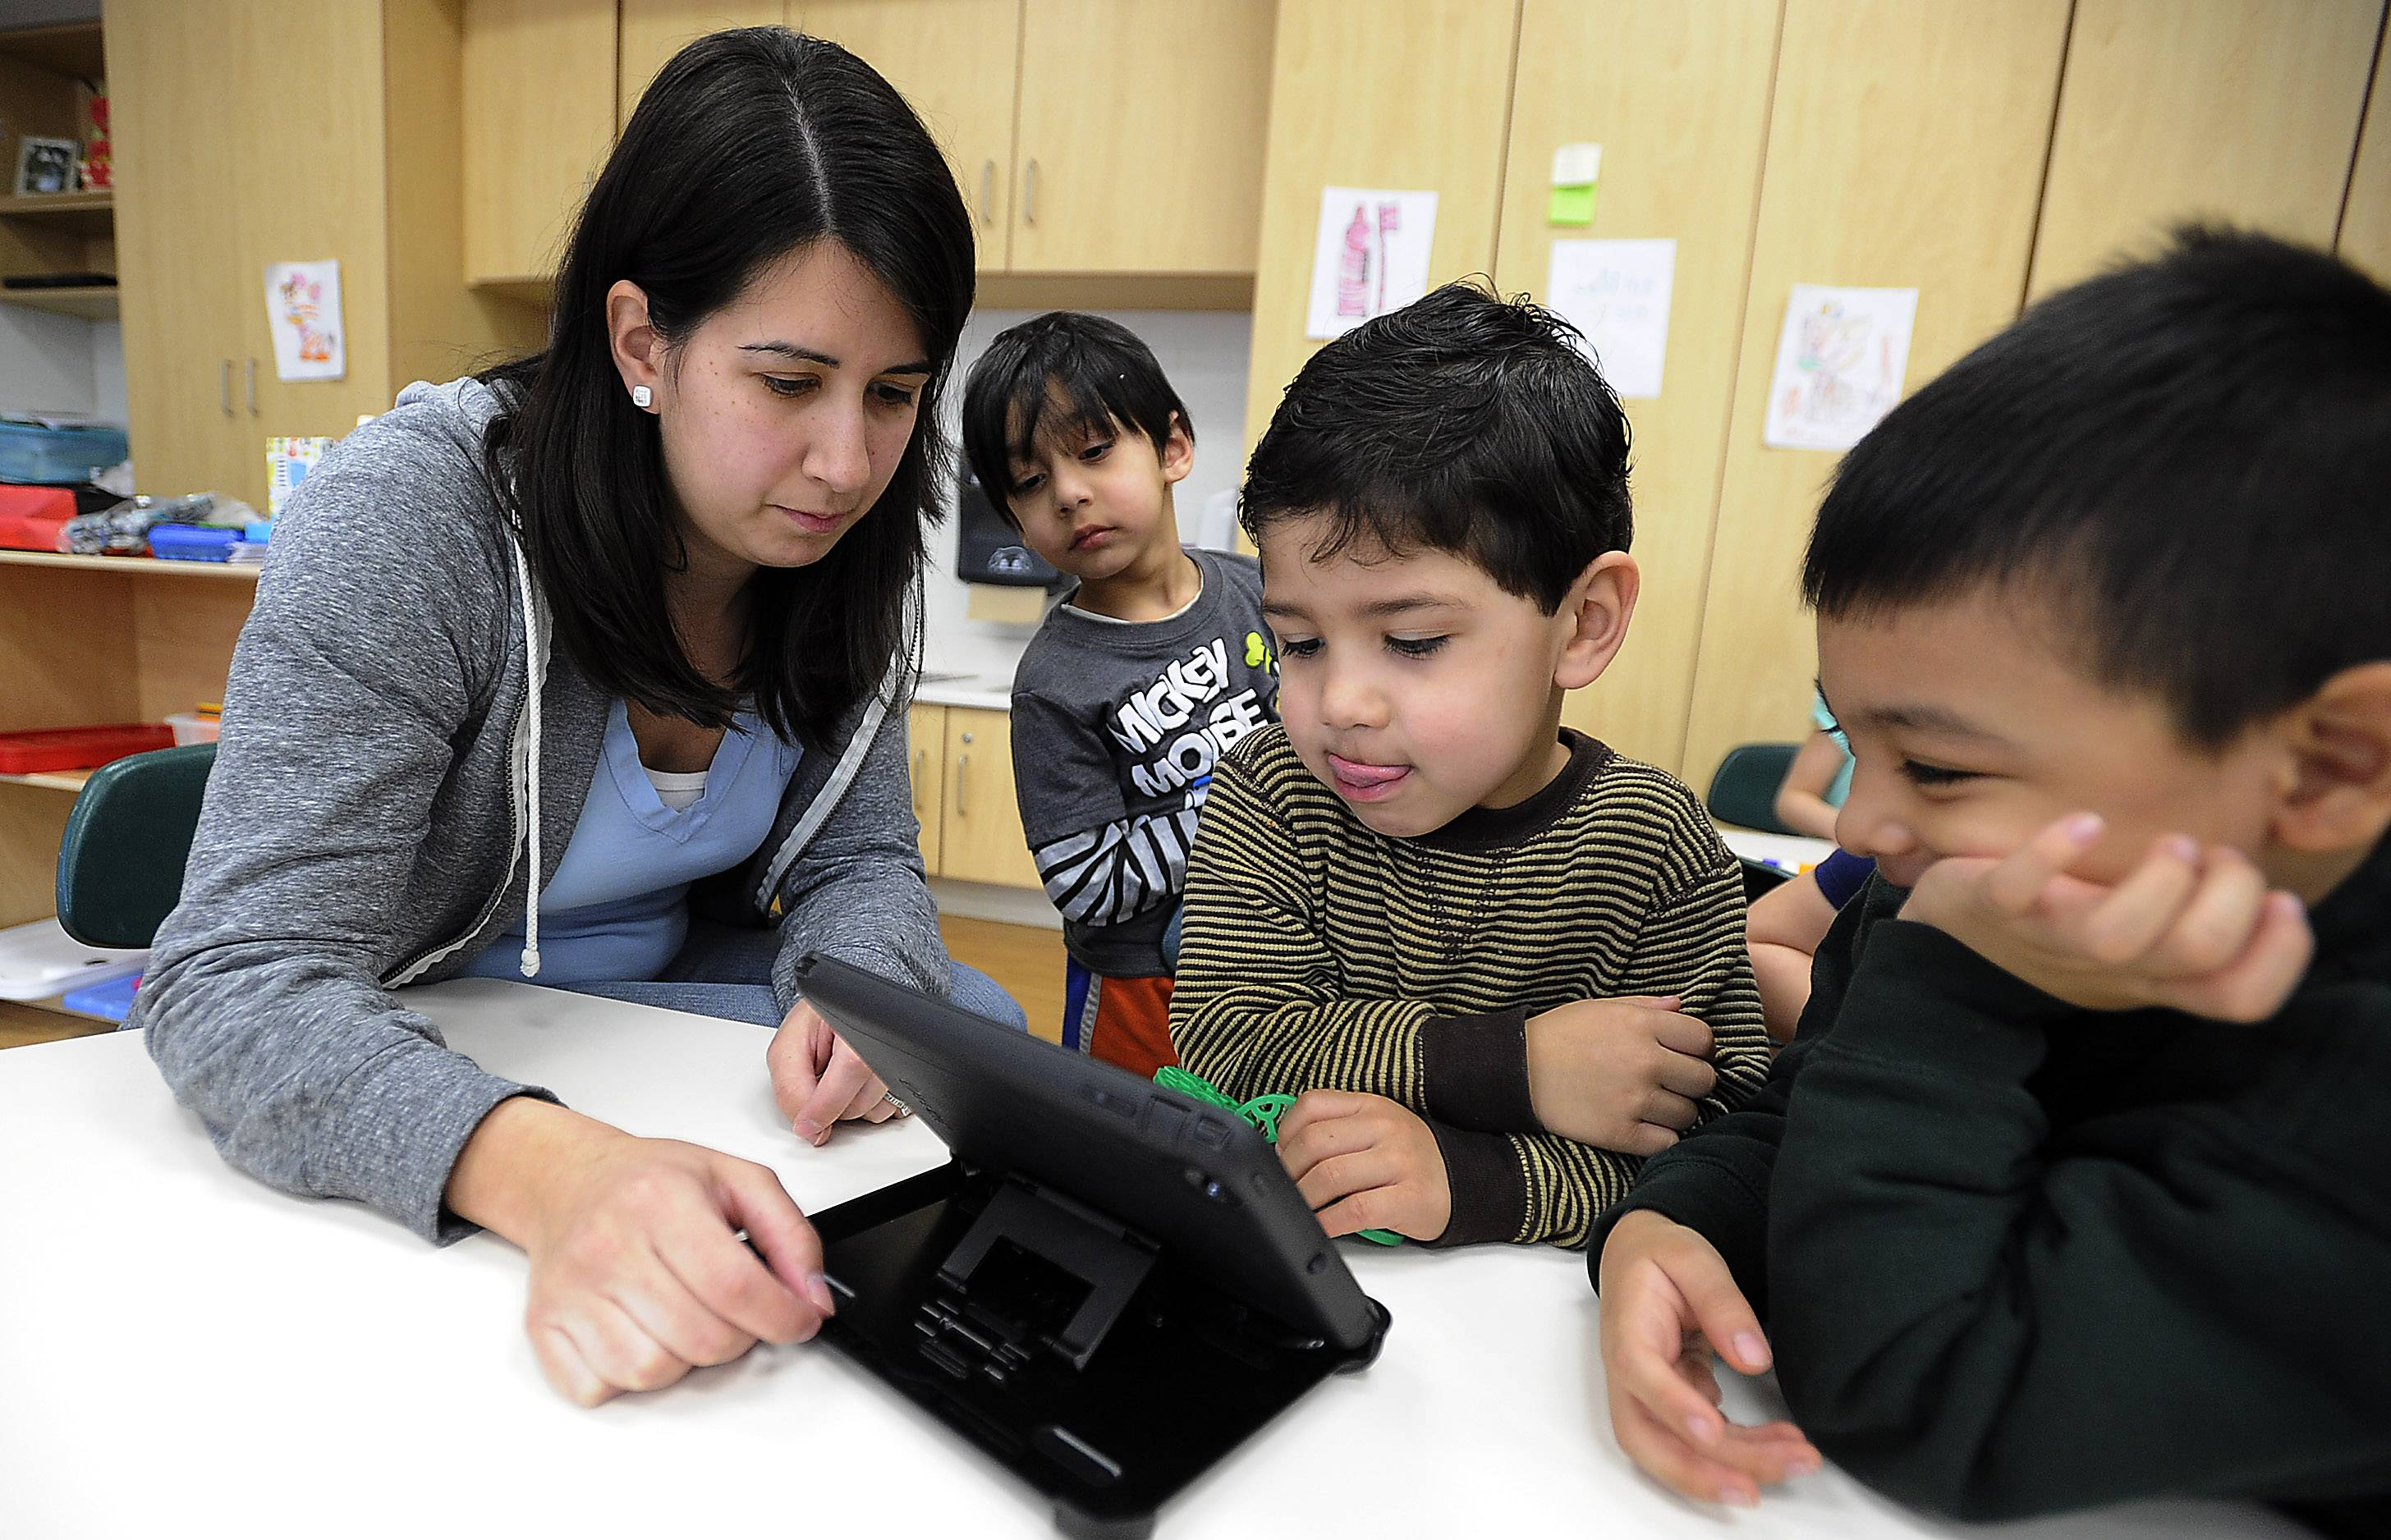 New early learning centers in suburbs help make Illinois a leader